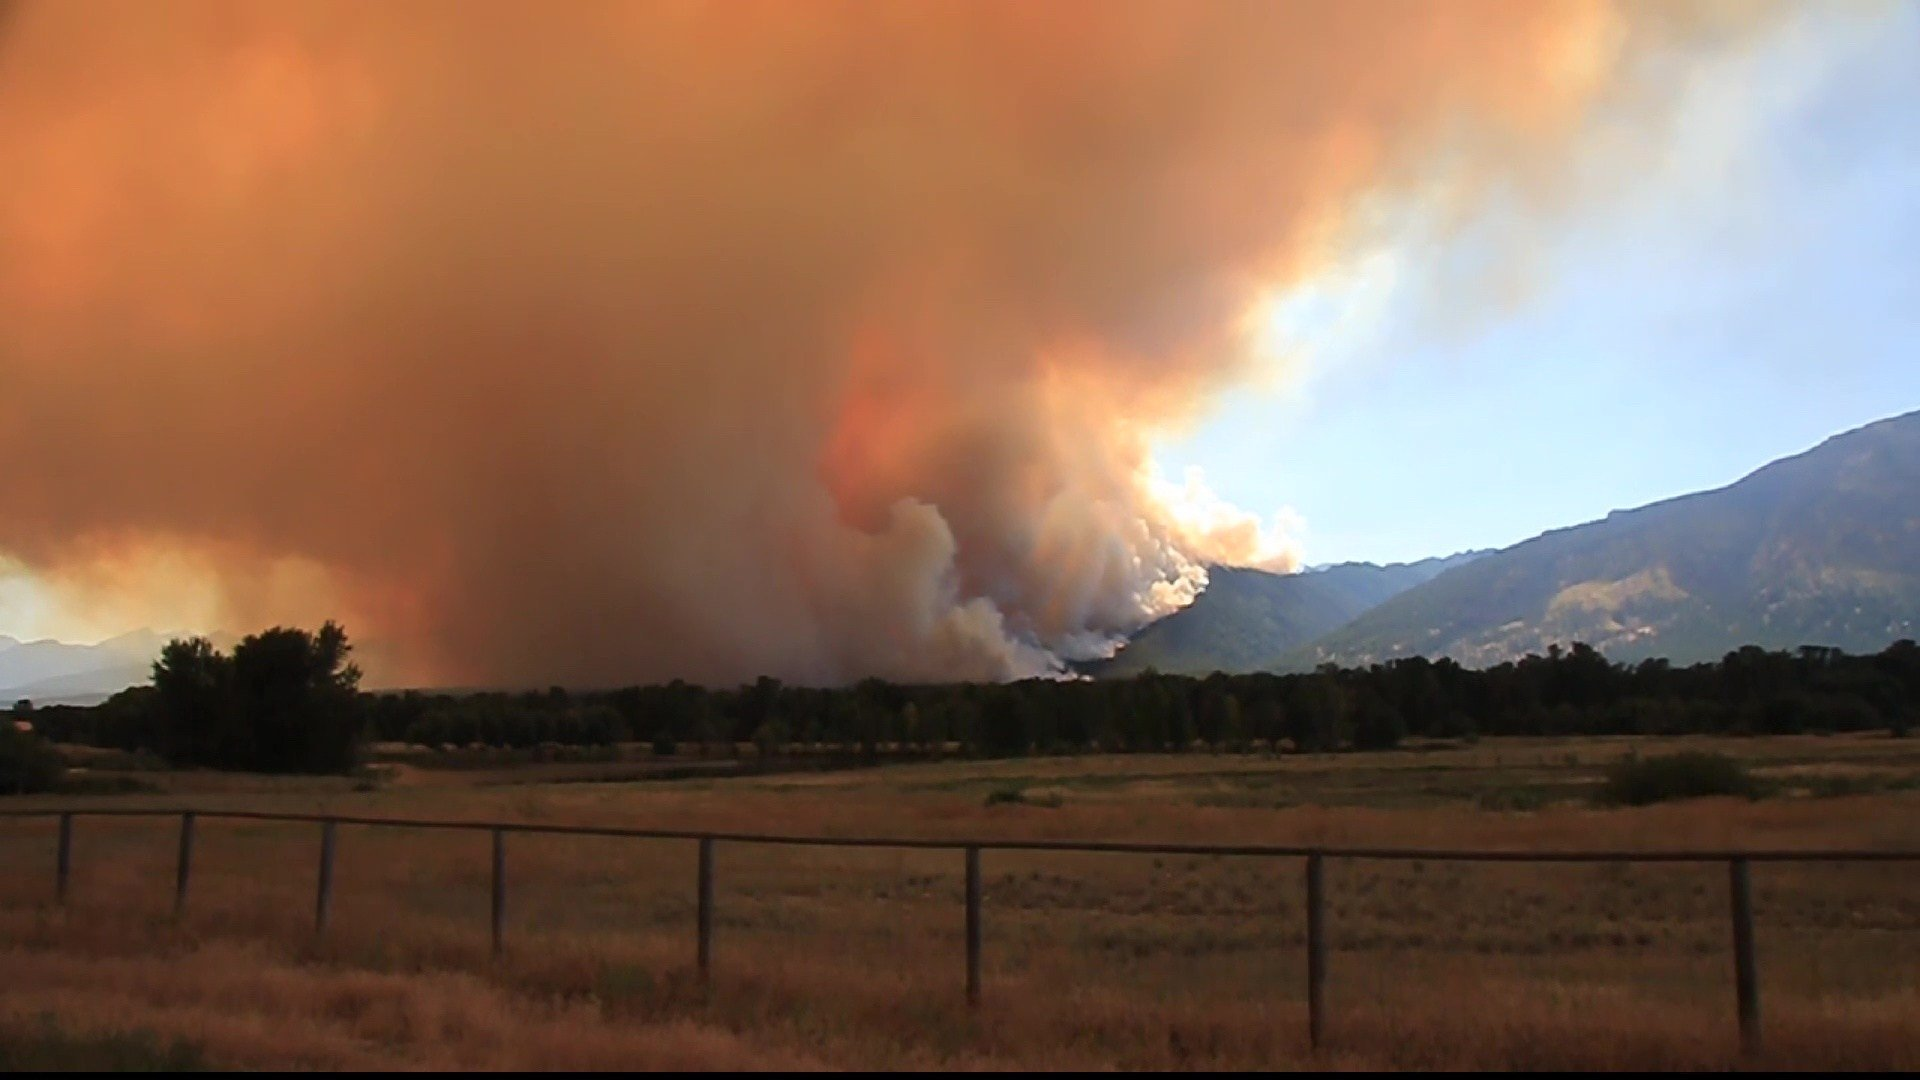 The Roaring Lion Fire burned more than 8,000 acres near Hamilton last year